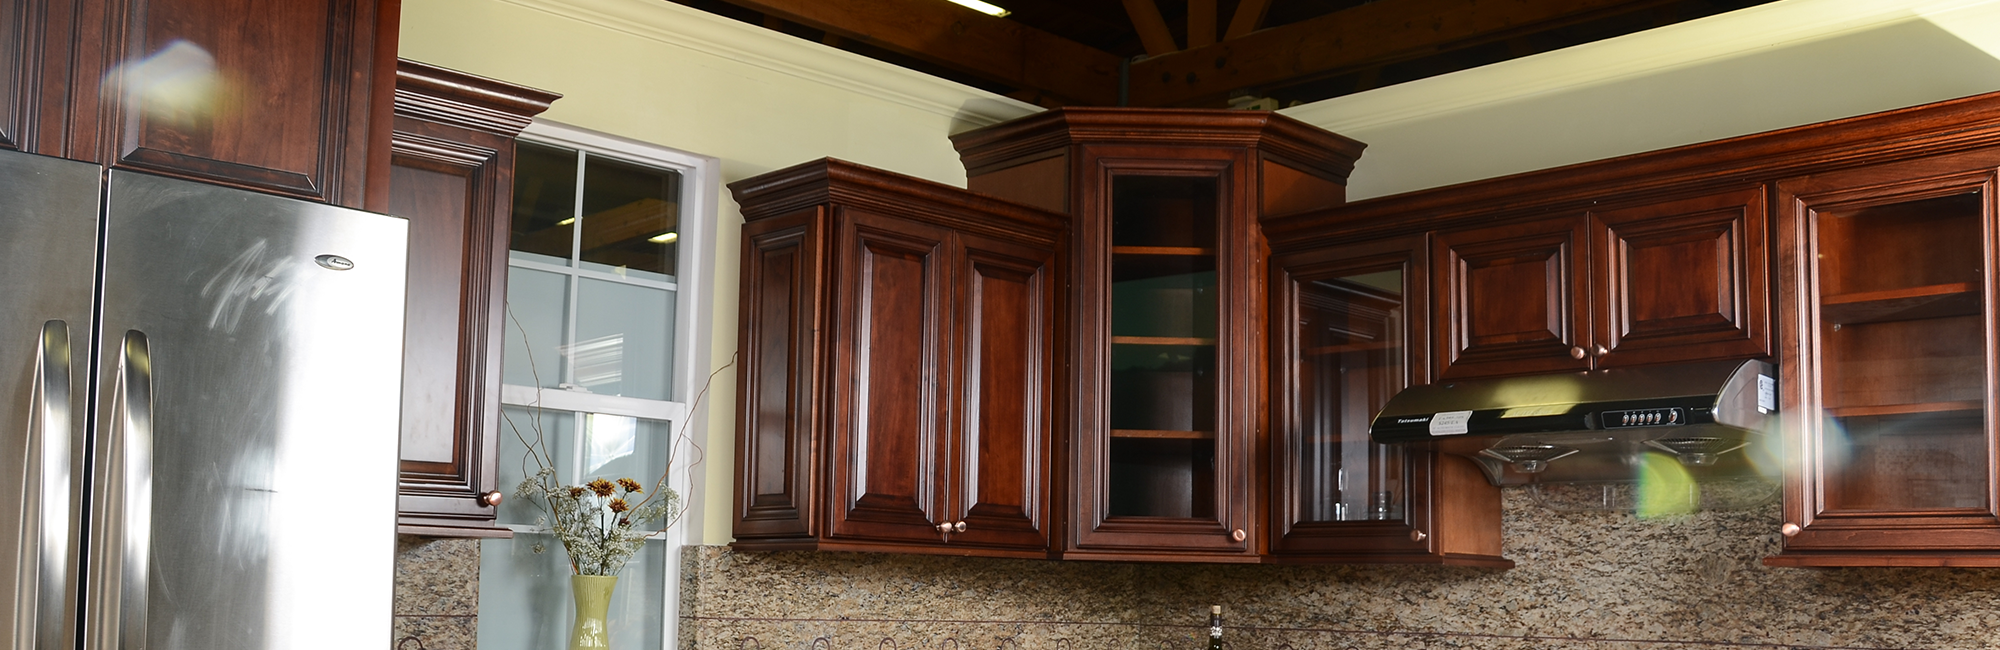 About Milzen Cabinetry